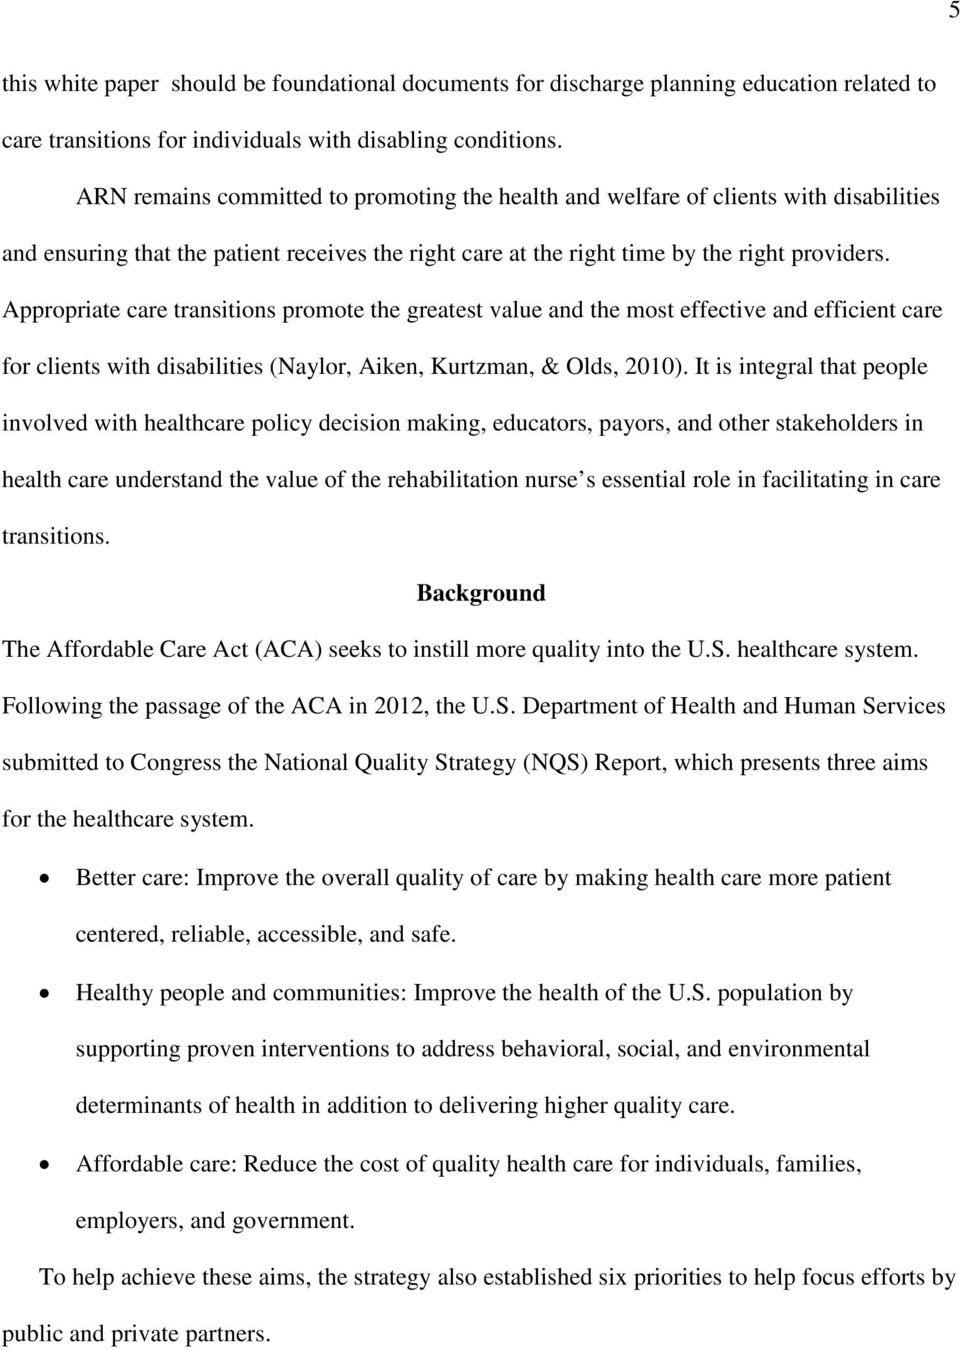 Appropriate care transitions promote the greatest value and the most effective and efficient care for clients with disabilities (Naylor, Aiken, Kurtzman, & Olds, 2010).